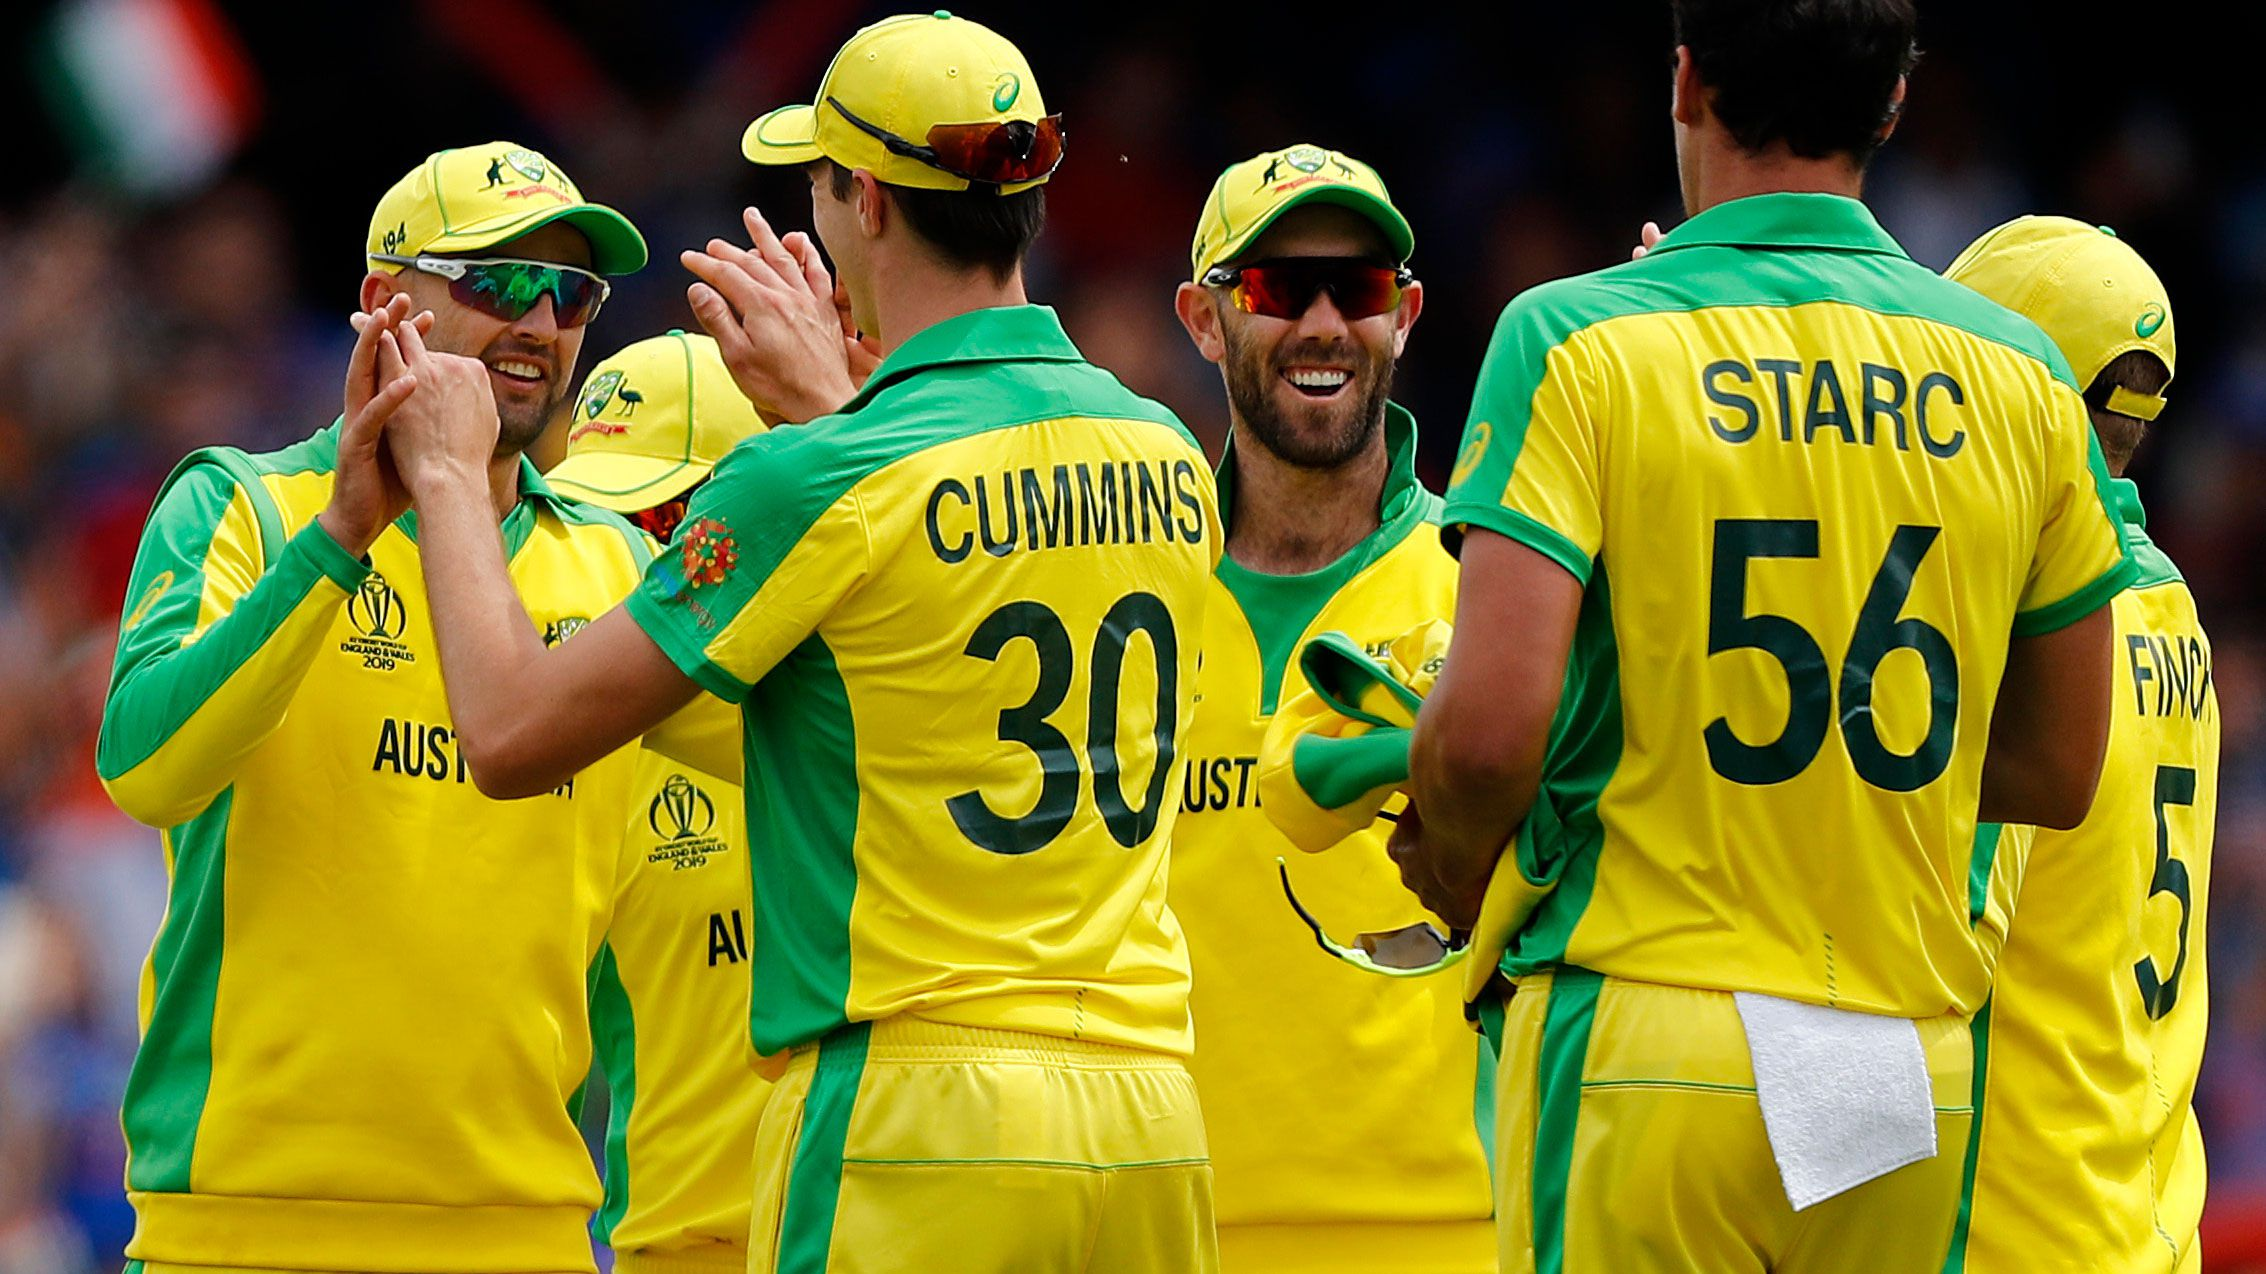 Nathan Lyon celebrates a wicket with Pat Cummins.